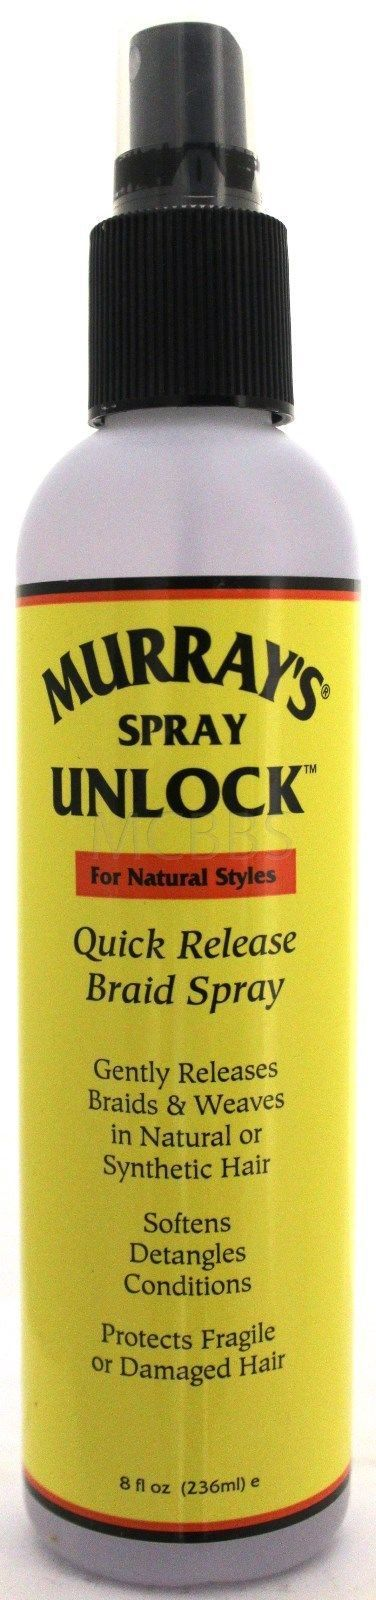 Murray's Spray Unlock